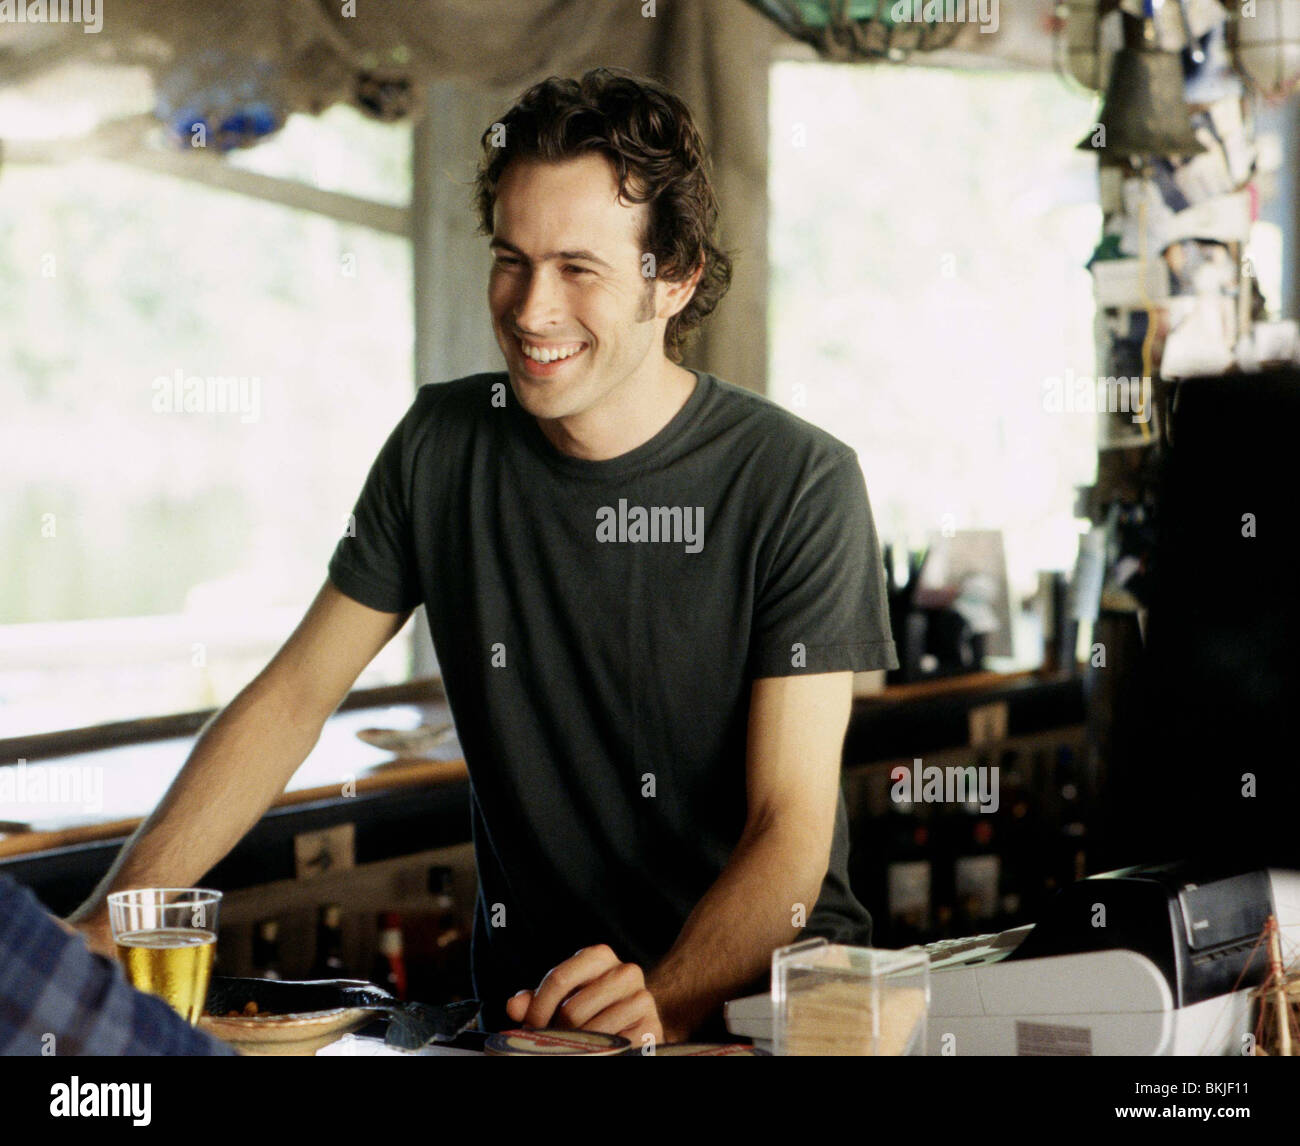 HEARTBREAKERS (2001) JASON LEE HTBR 001-120 - Stock Image